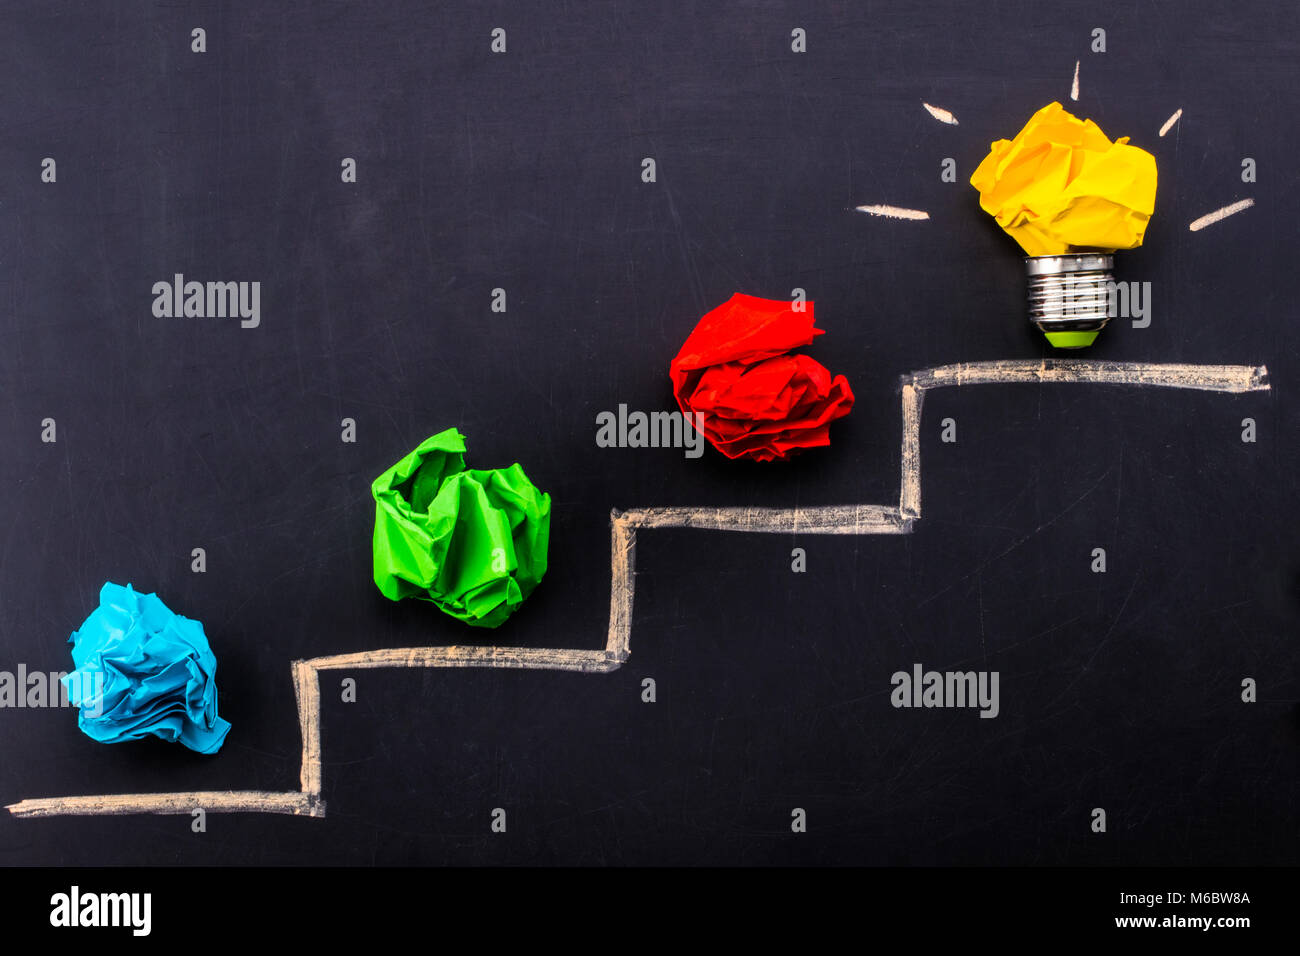 Evolving idea concept with colorful crumpled paper and light bulb on steps drawn on blackboard. - Stock Image